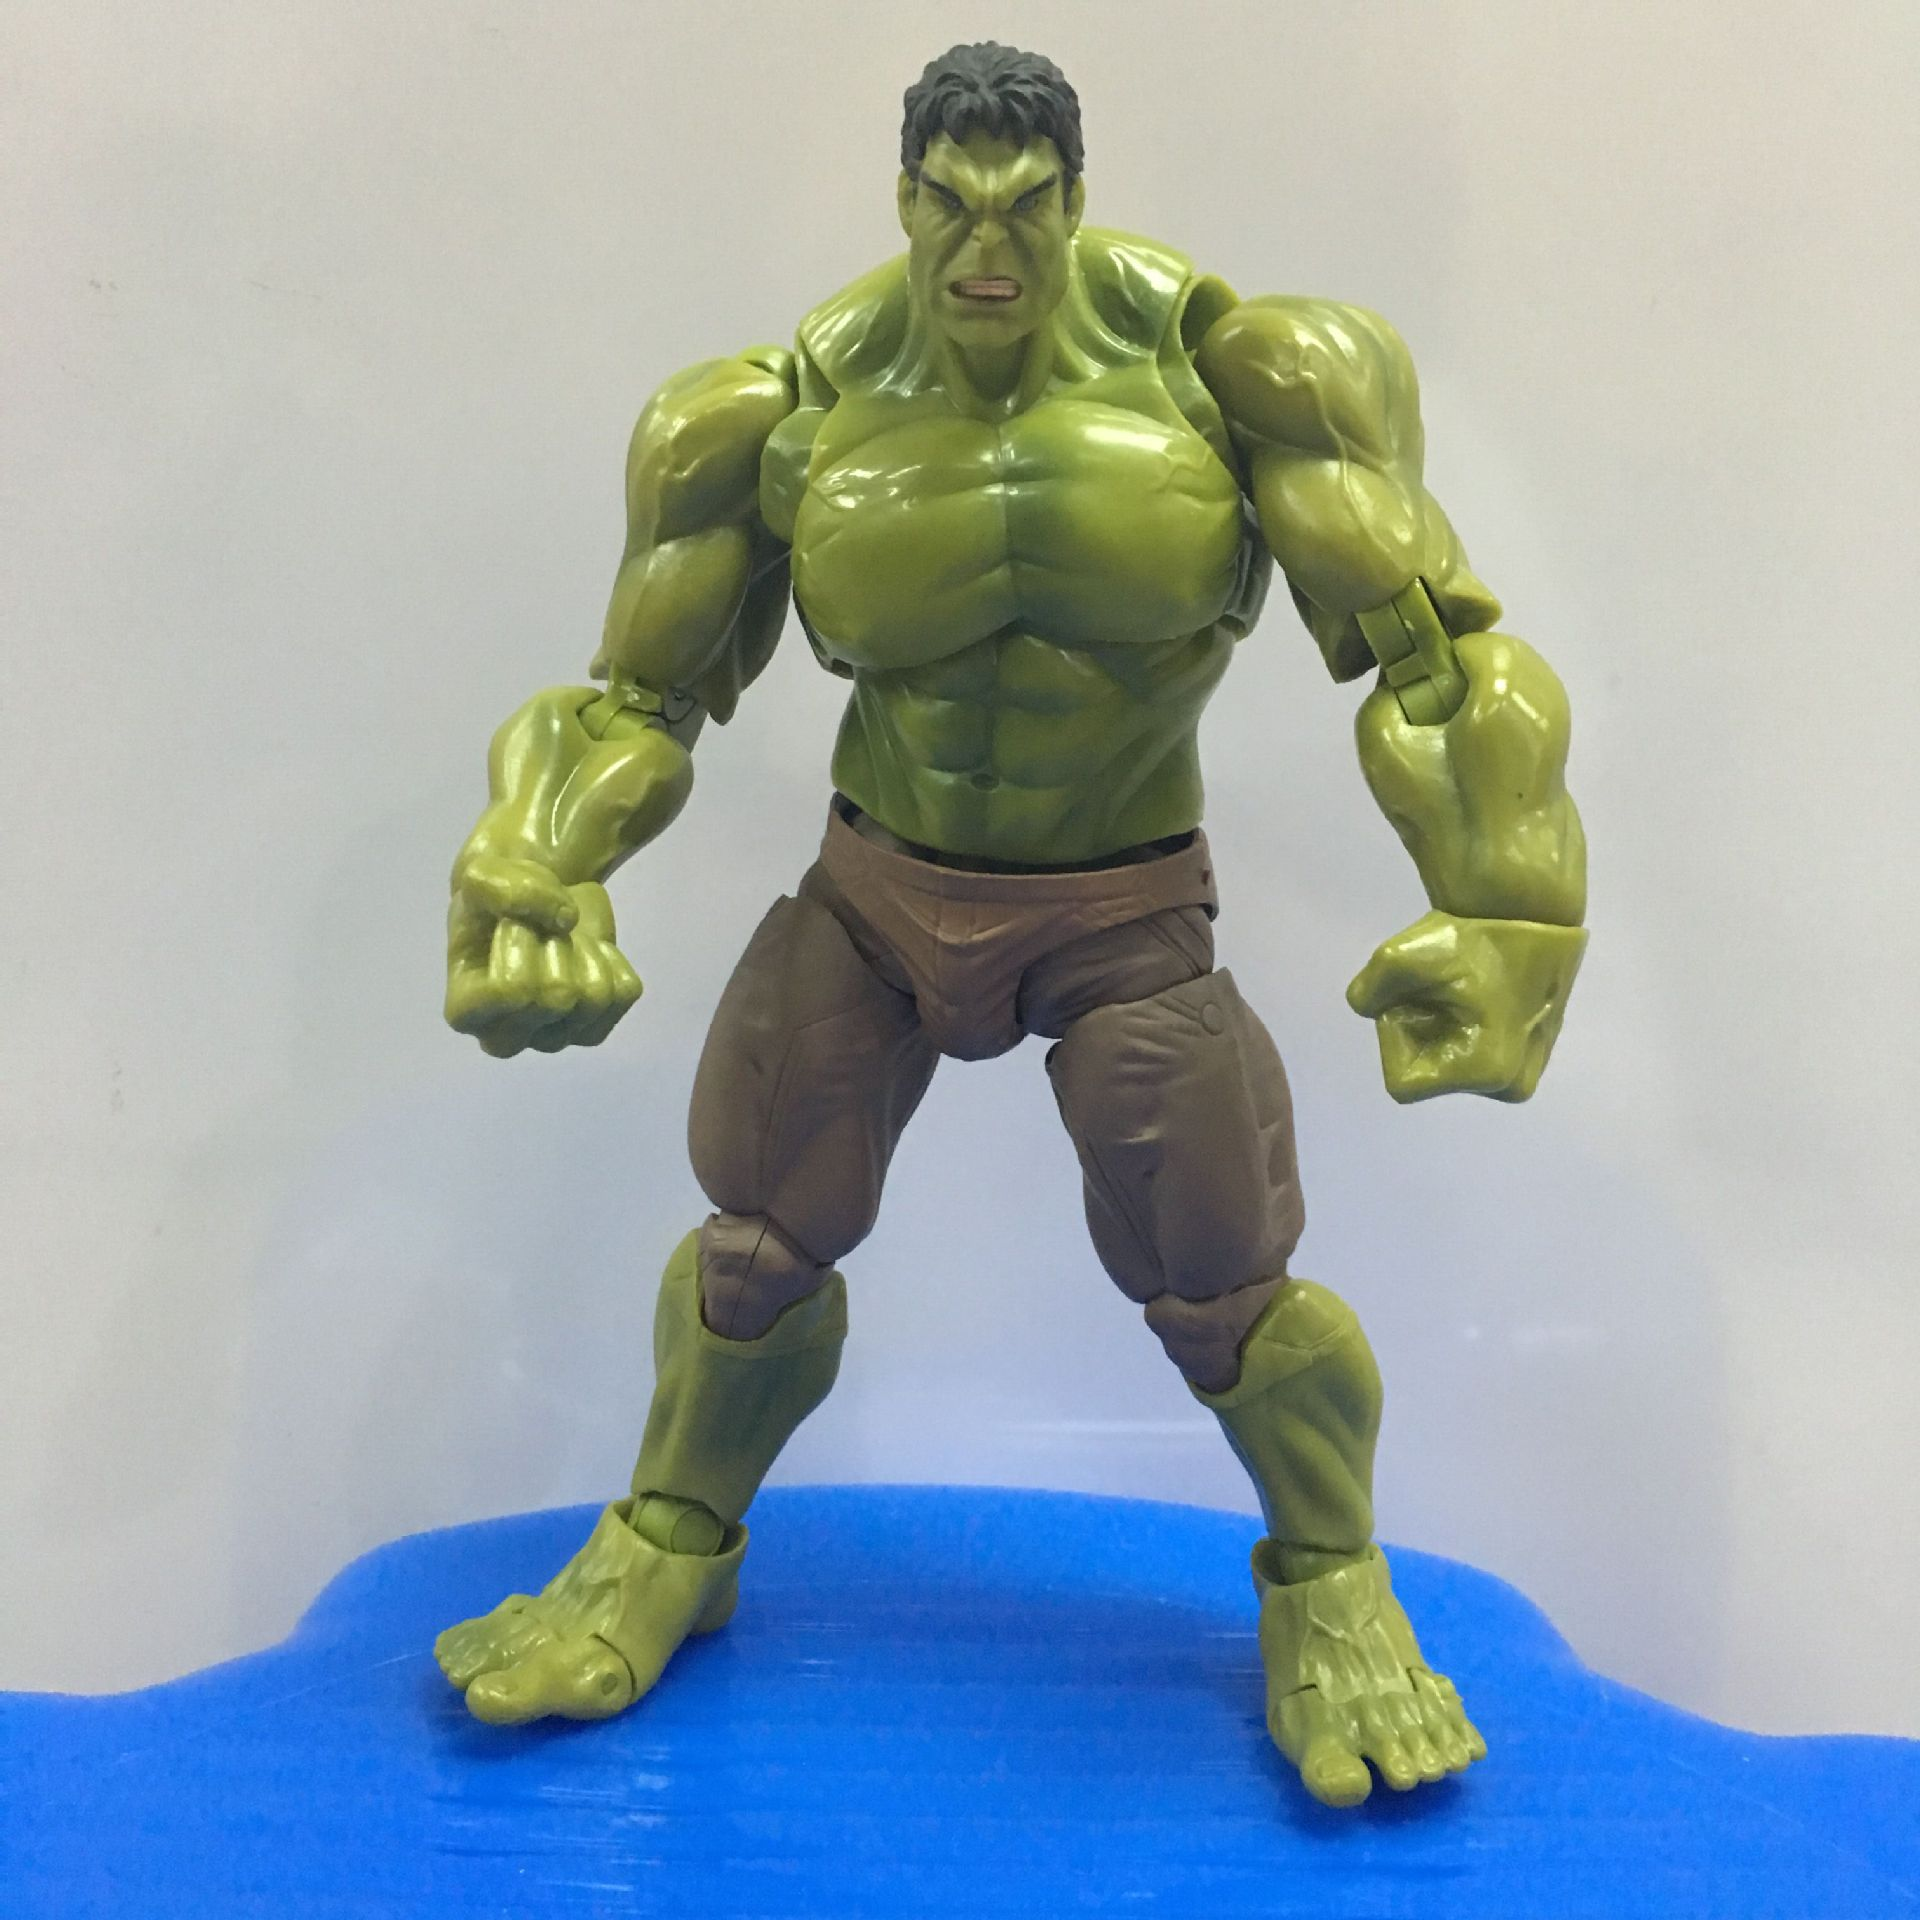 ФОТО Avengers Figures Hulk Action Figures Pvc Superman 17cm Figma Hot Toys Kids Toys Collection Models